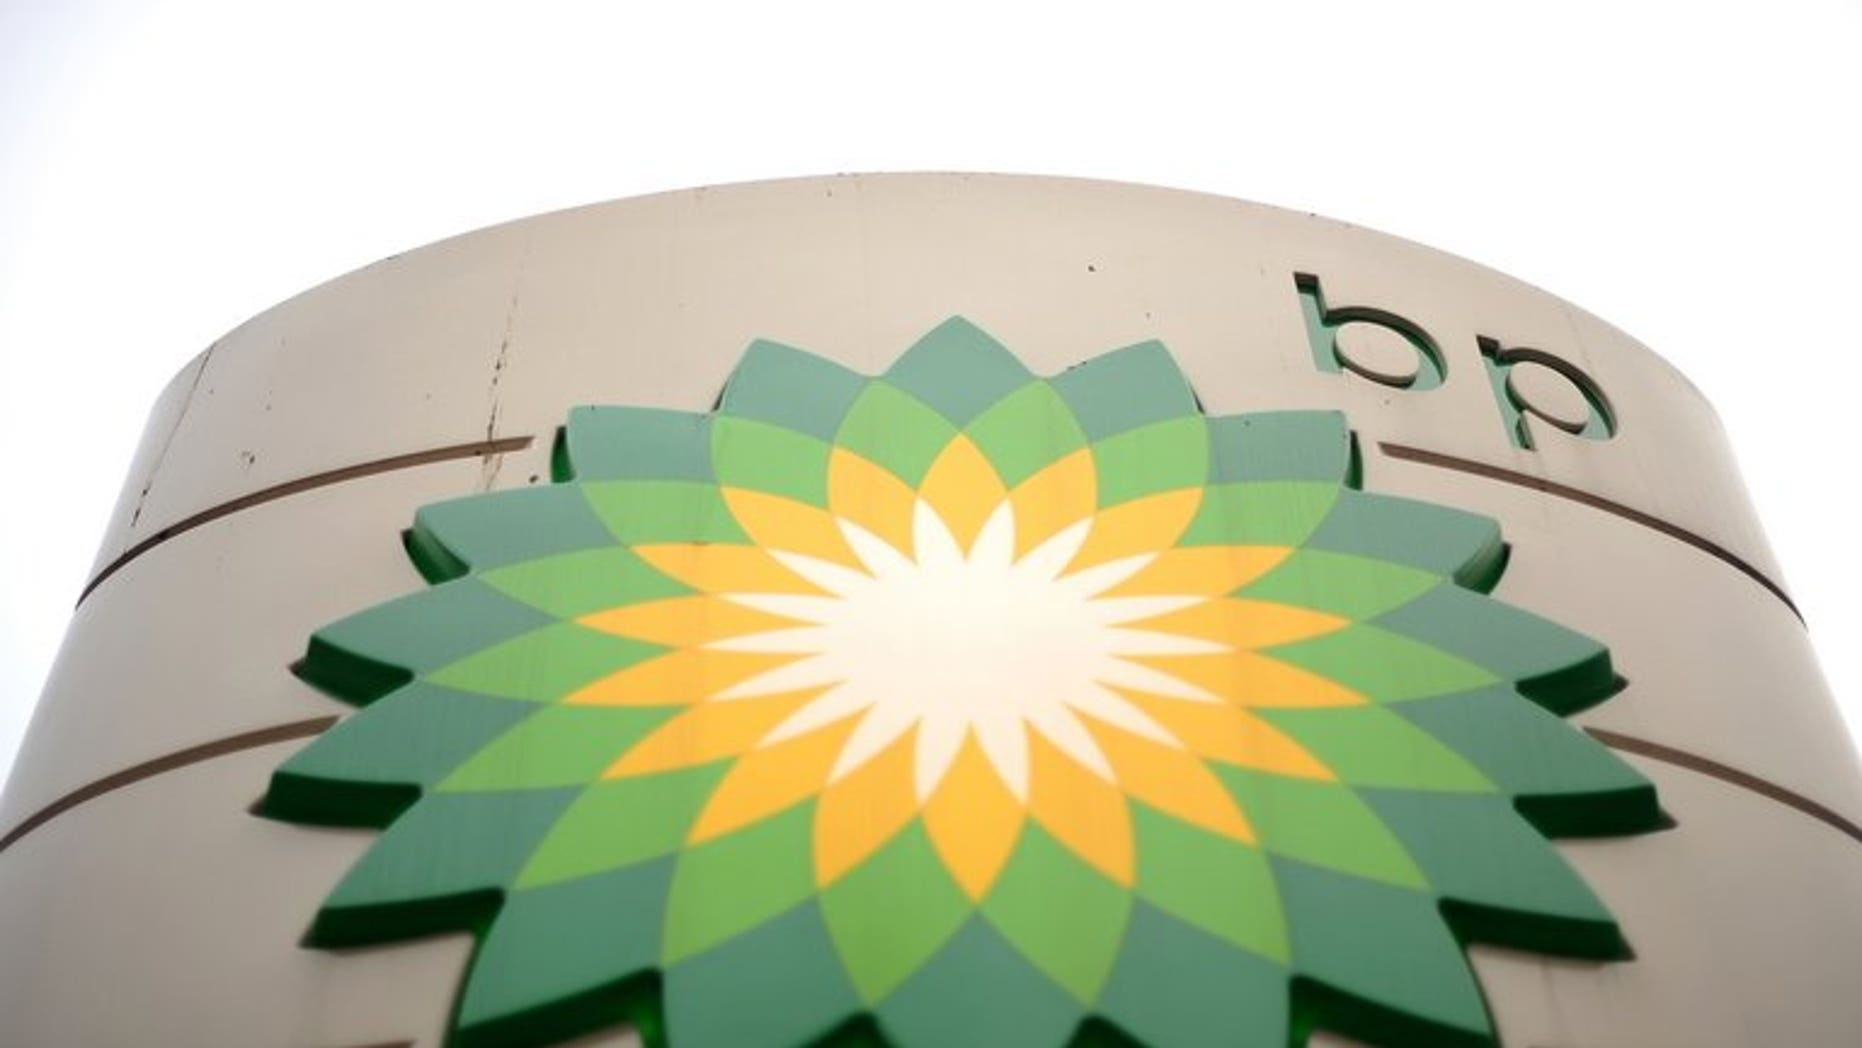 BP said Tuesday that it returned to profit in the second quarter of 2013, after the previous year's loss over lower oil prices and writedowns on assets.